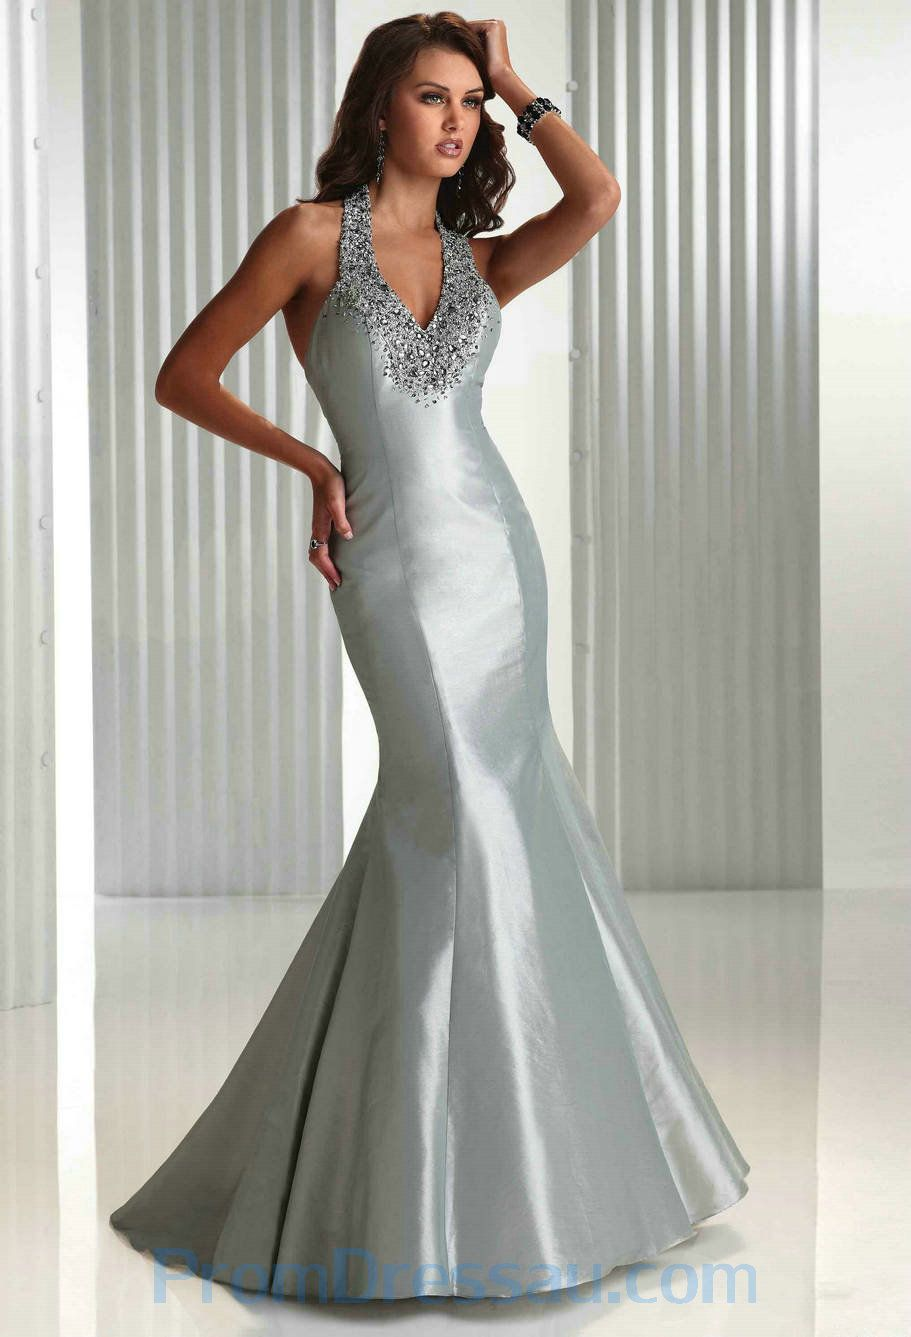 silver evening gowns - Google Search | Evening gowns | Pinterest ...